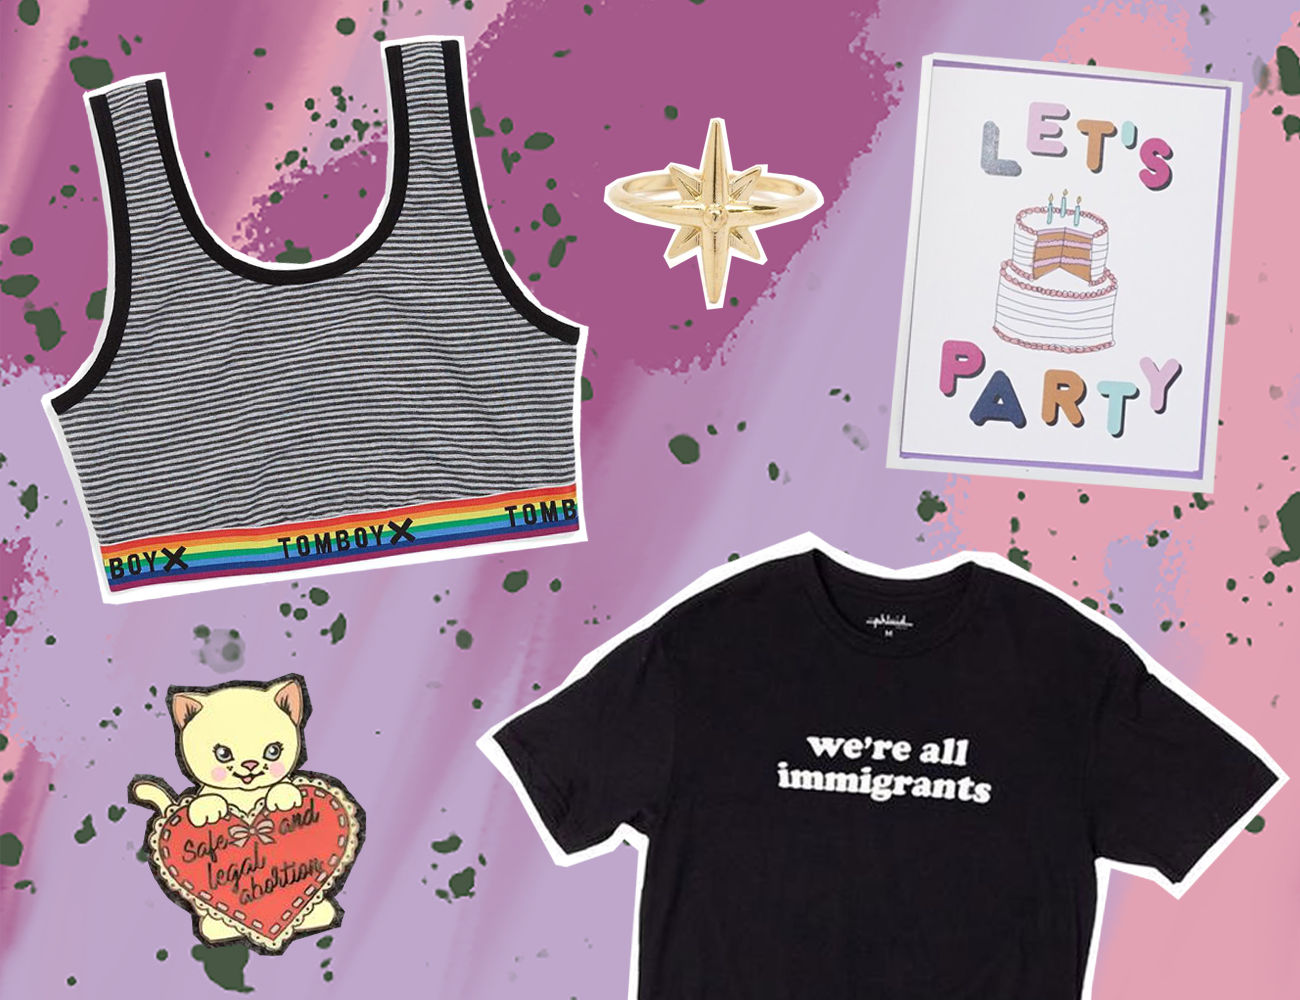 Clockwise: TomboyX    bralette   , Mooreaseal    ring   , Ash & Chess    birthday card,    The Phluid Project    tee   , Jini & Tonic    enamel pin   . All images belong to creators, not me.